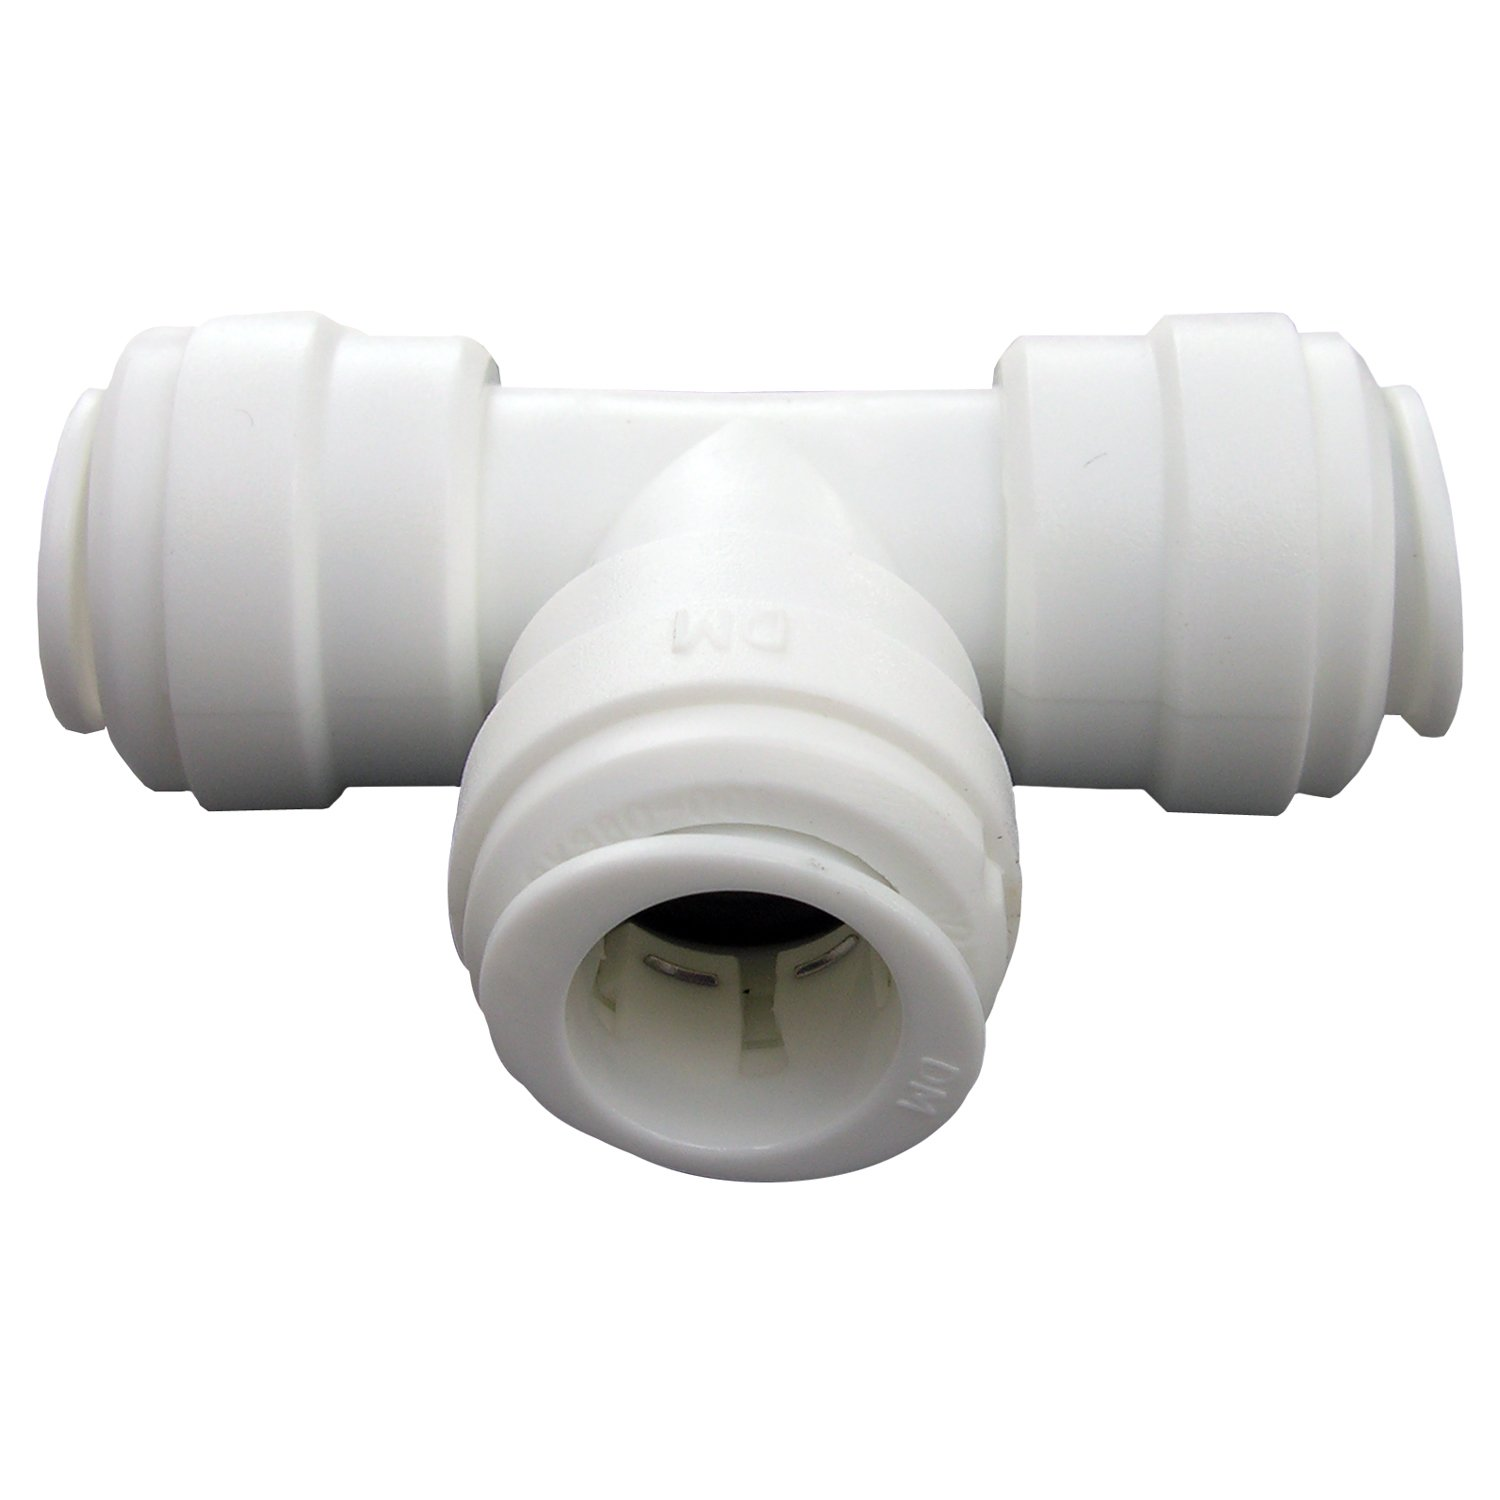 LASCO 19-6135 Reducing Tee Push-In Fitting with 3/8 x 3/8 x 1/4-Inch OD Tubing, Plastic